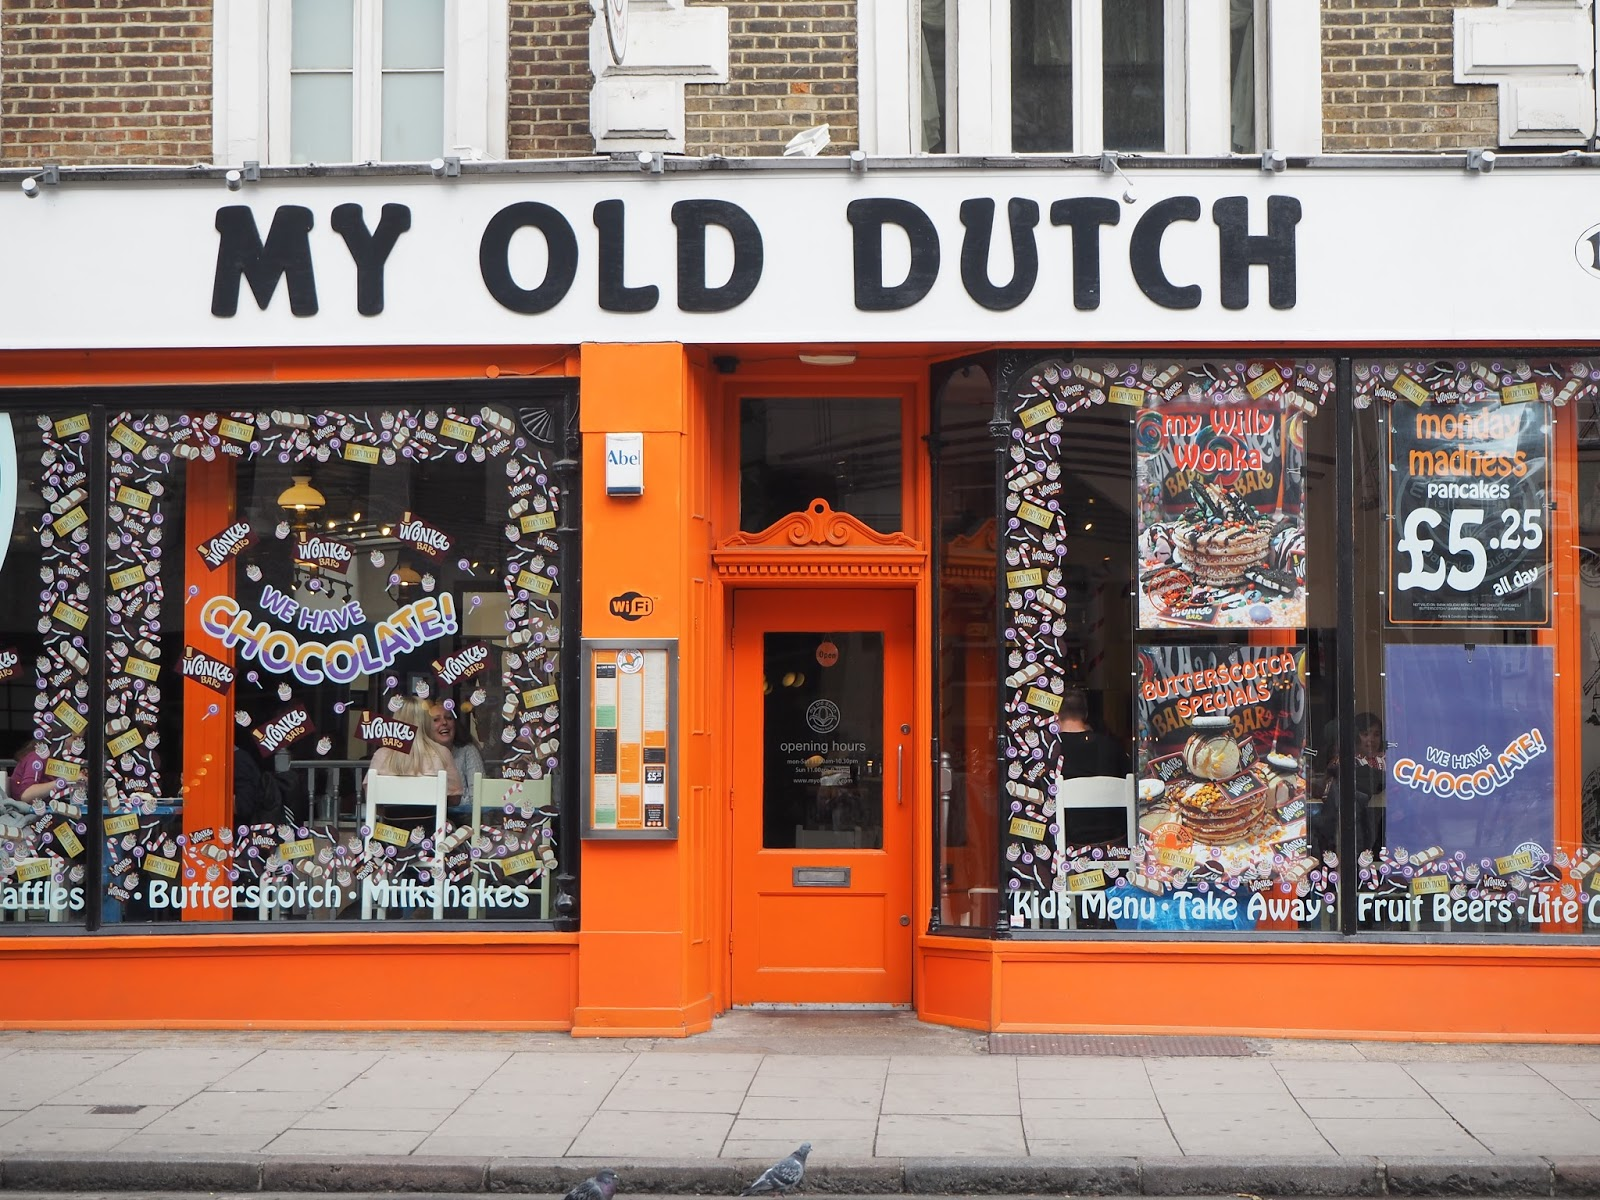 My Old Dutch Pancake House in Holborn, London